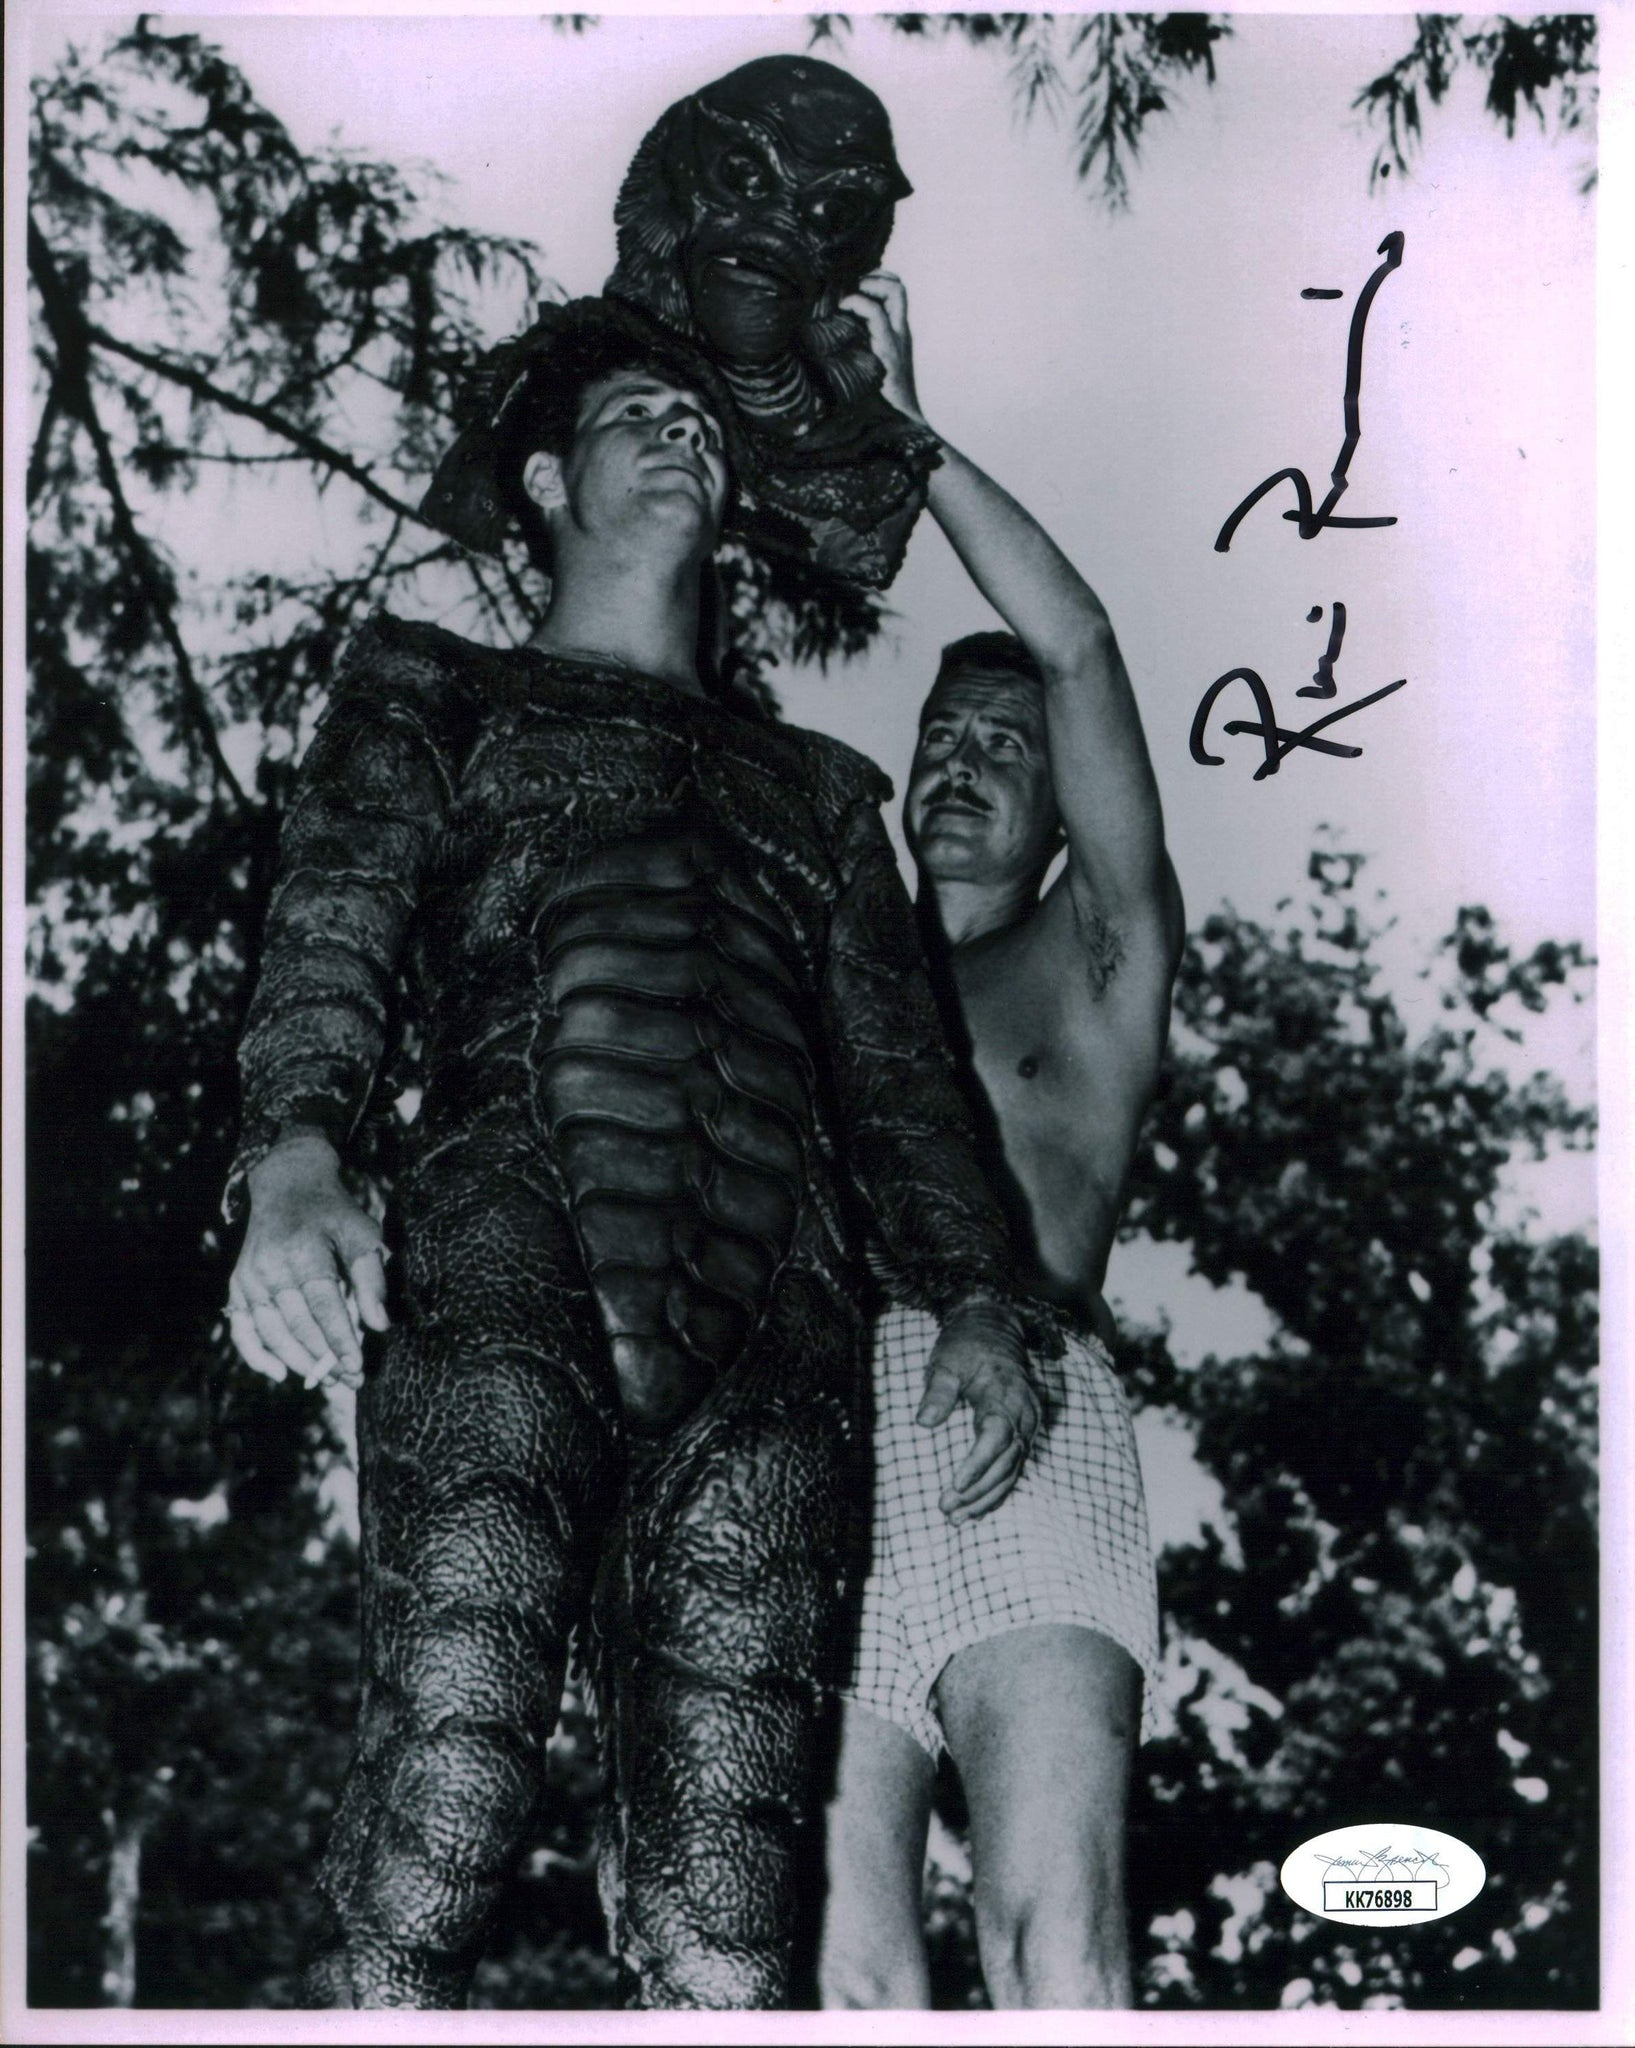 Ricou Browning Creature From the Black Lagoon 8x10 Photo Signed Autographed JSA Certified COA GalaxyCon